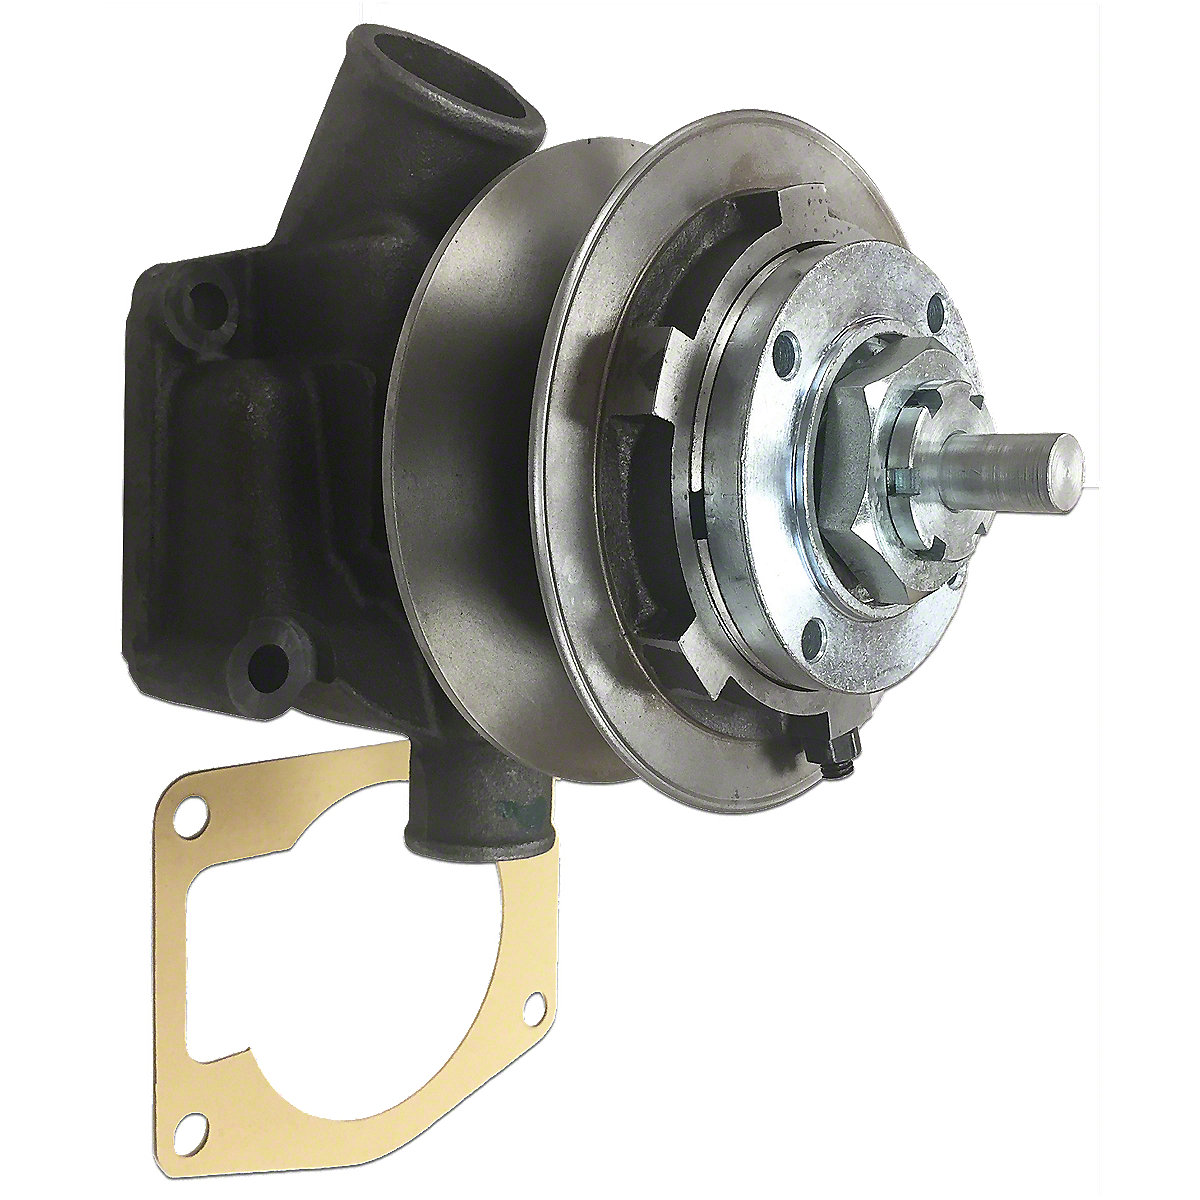 IHS189Water Pump